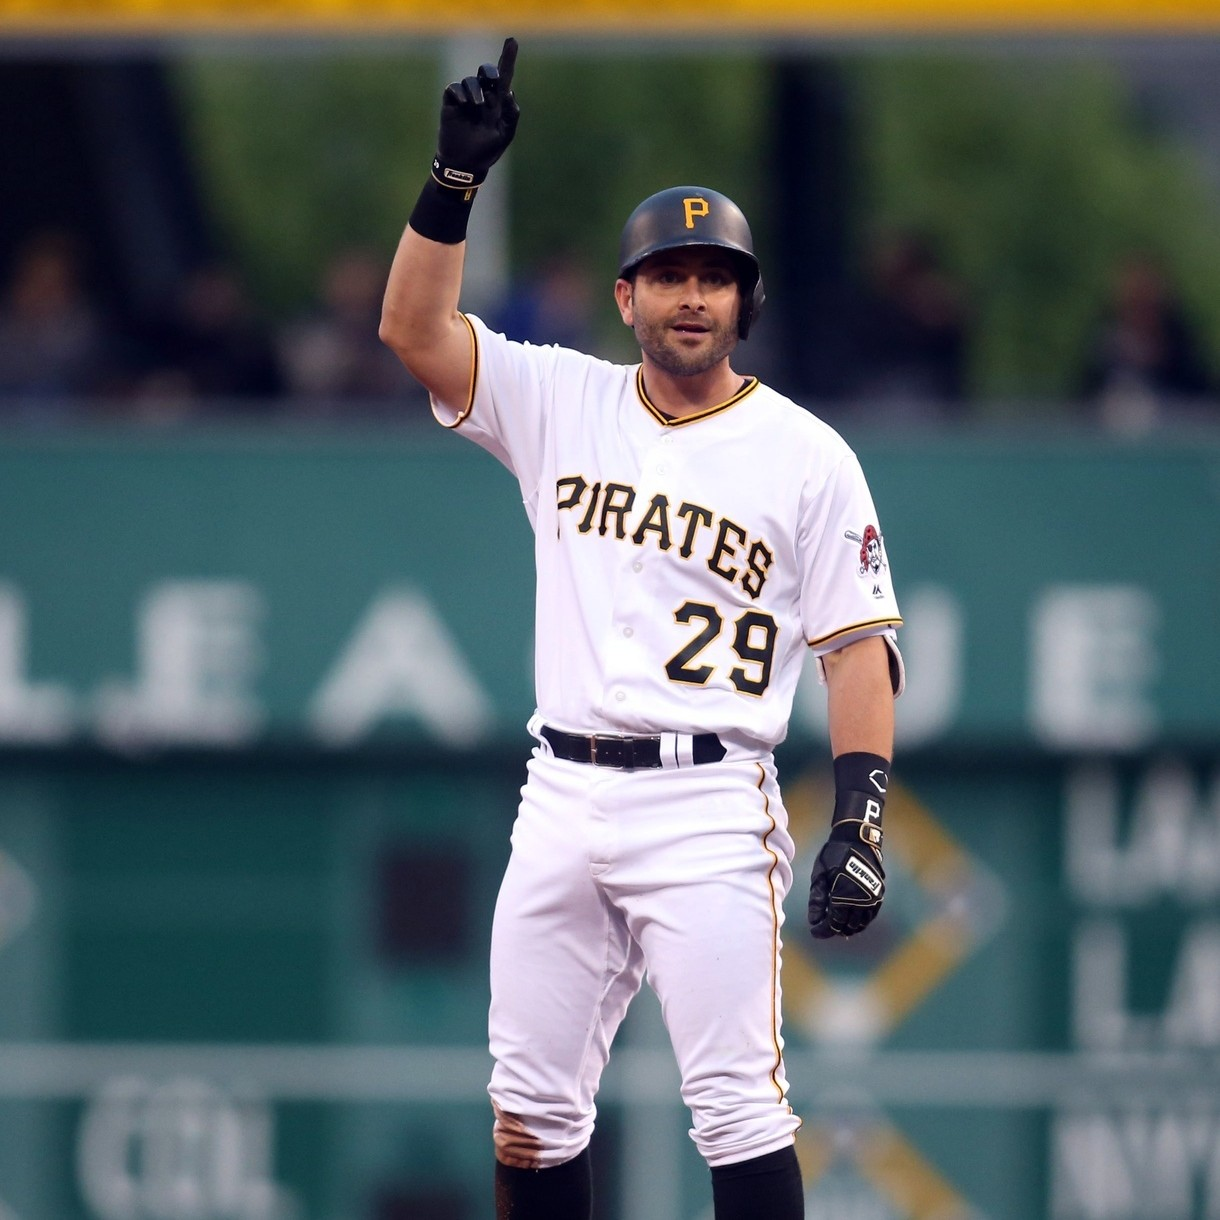 Francisco-cervelli-was-the-perfect-extension-candidate-for-the-pirates-1464707546.jpg?crop=1xw:0.7588757396449705xh;0xw,0